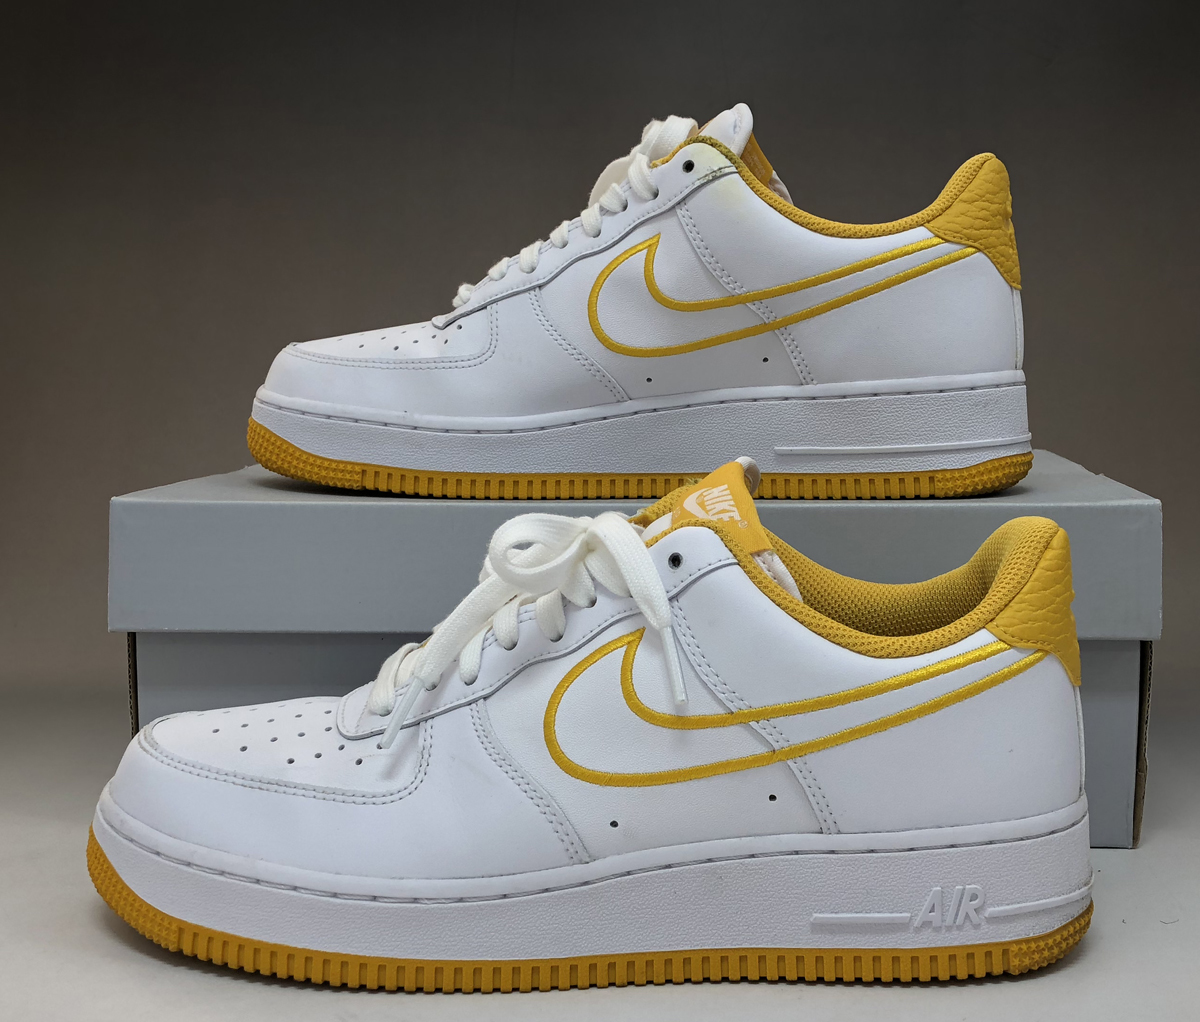 secondhand goods Nike NIKE AIR FORCE 1